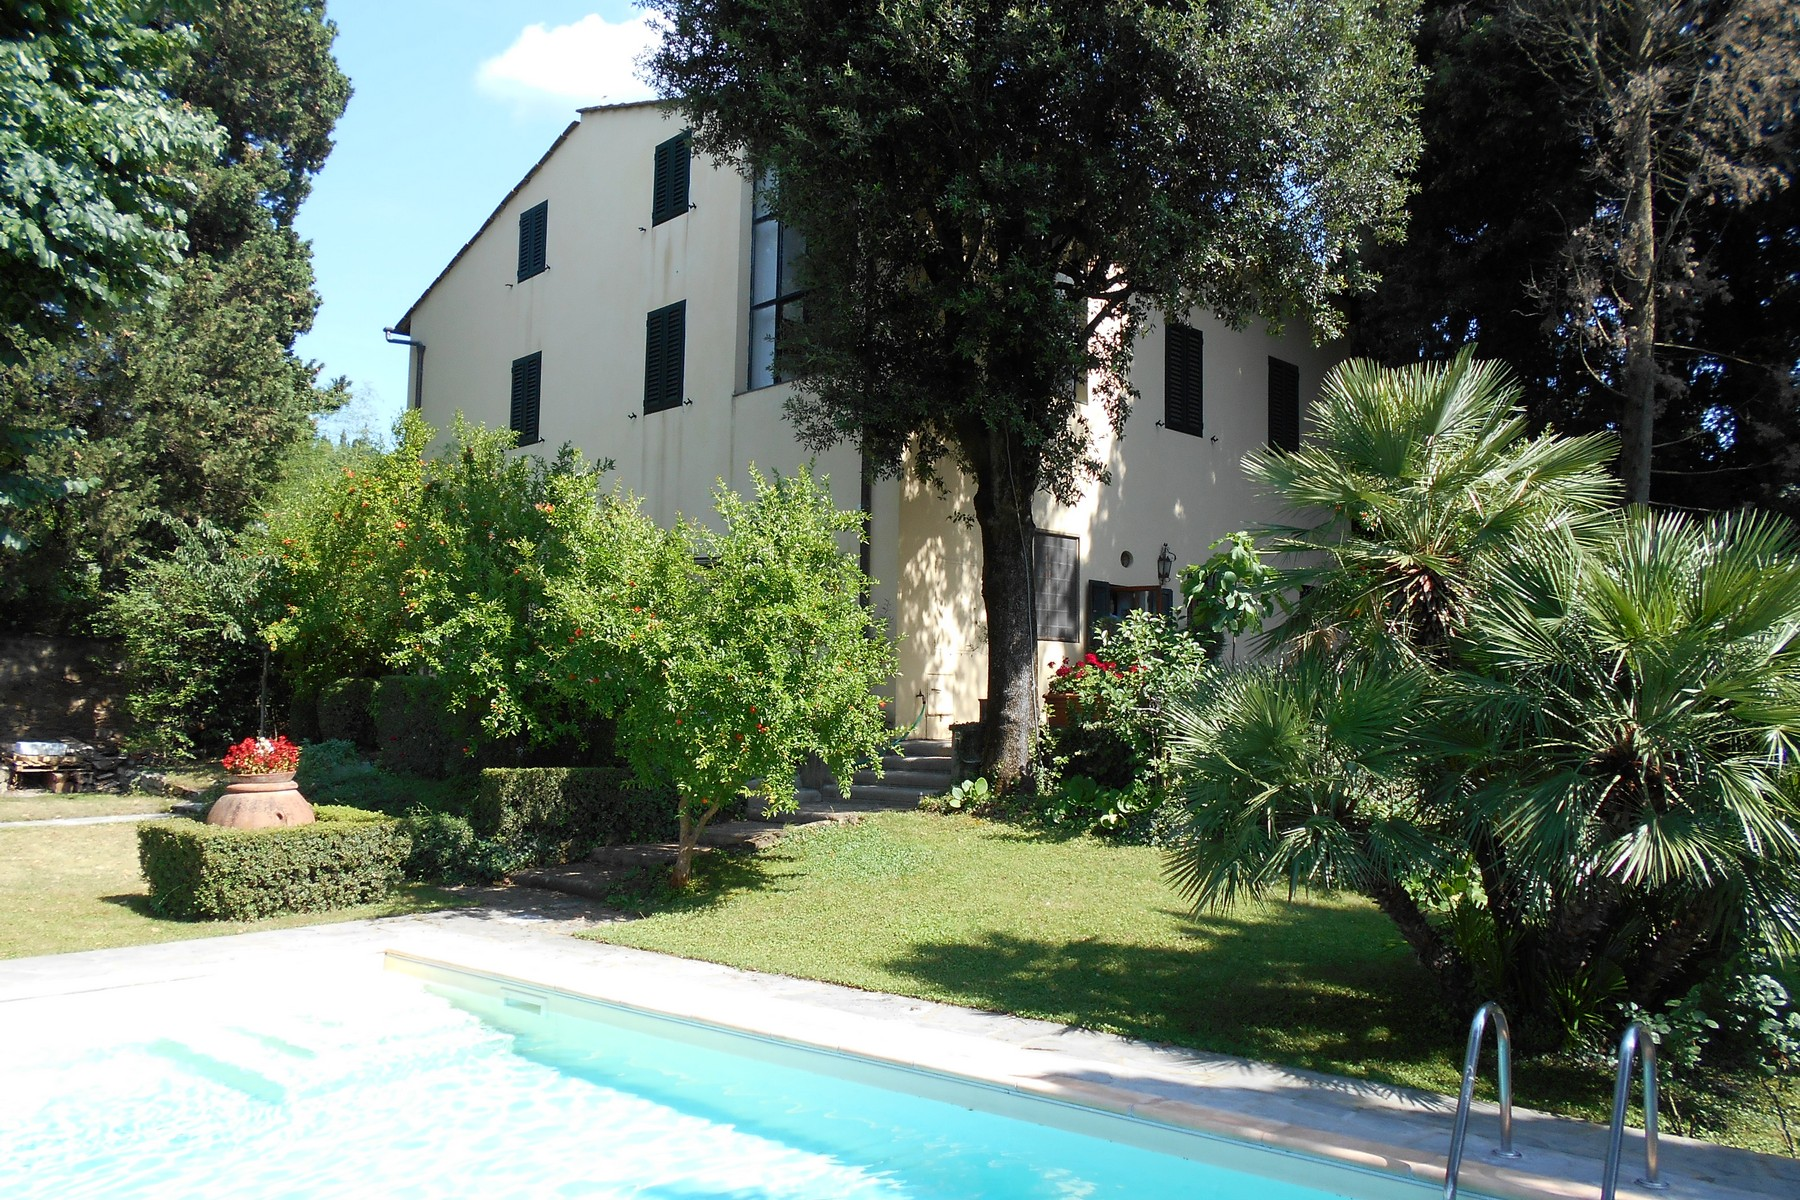 Maison unifamiliale pour l Vente à Beautiful villa with swimming pool with breathtaking view. Via Lonchio Antella Bagno A Ripoli, Florence 50012 Italie